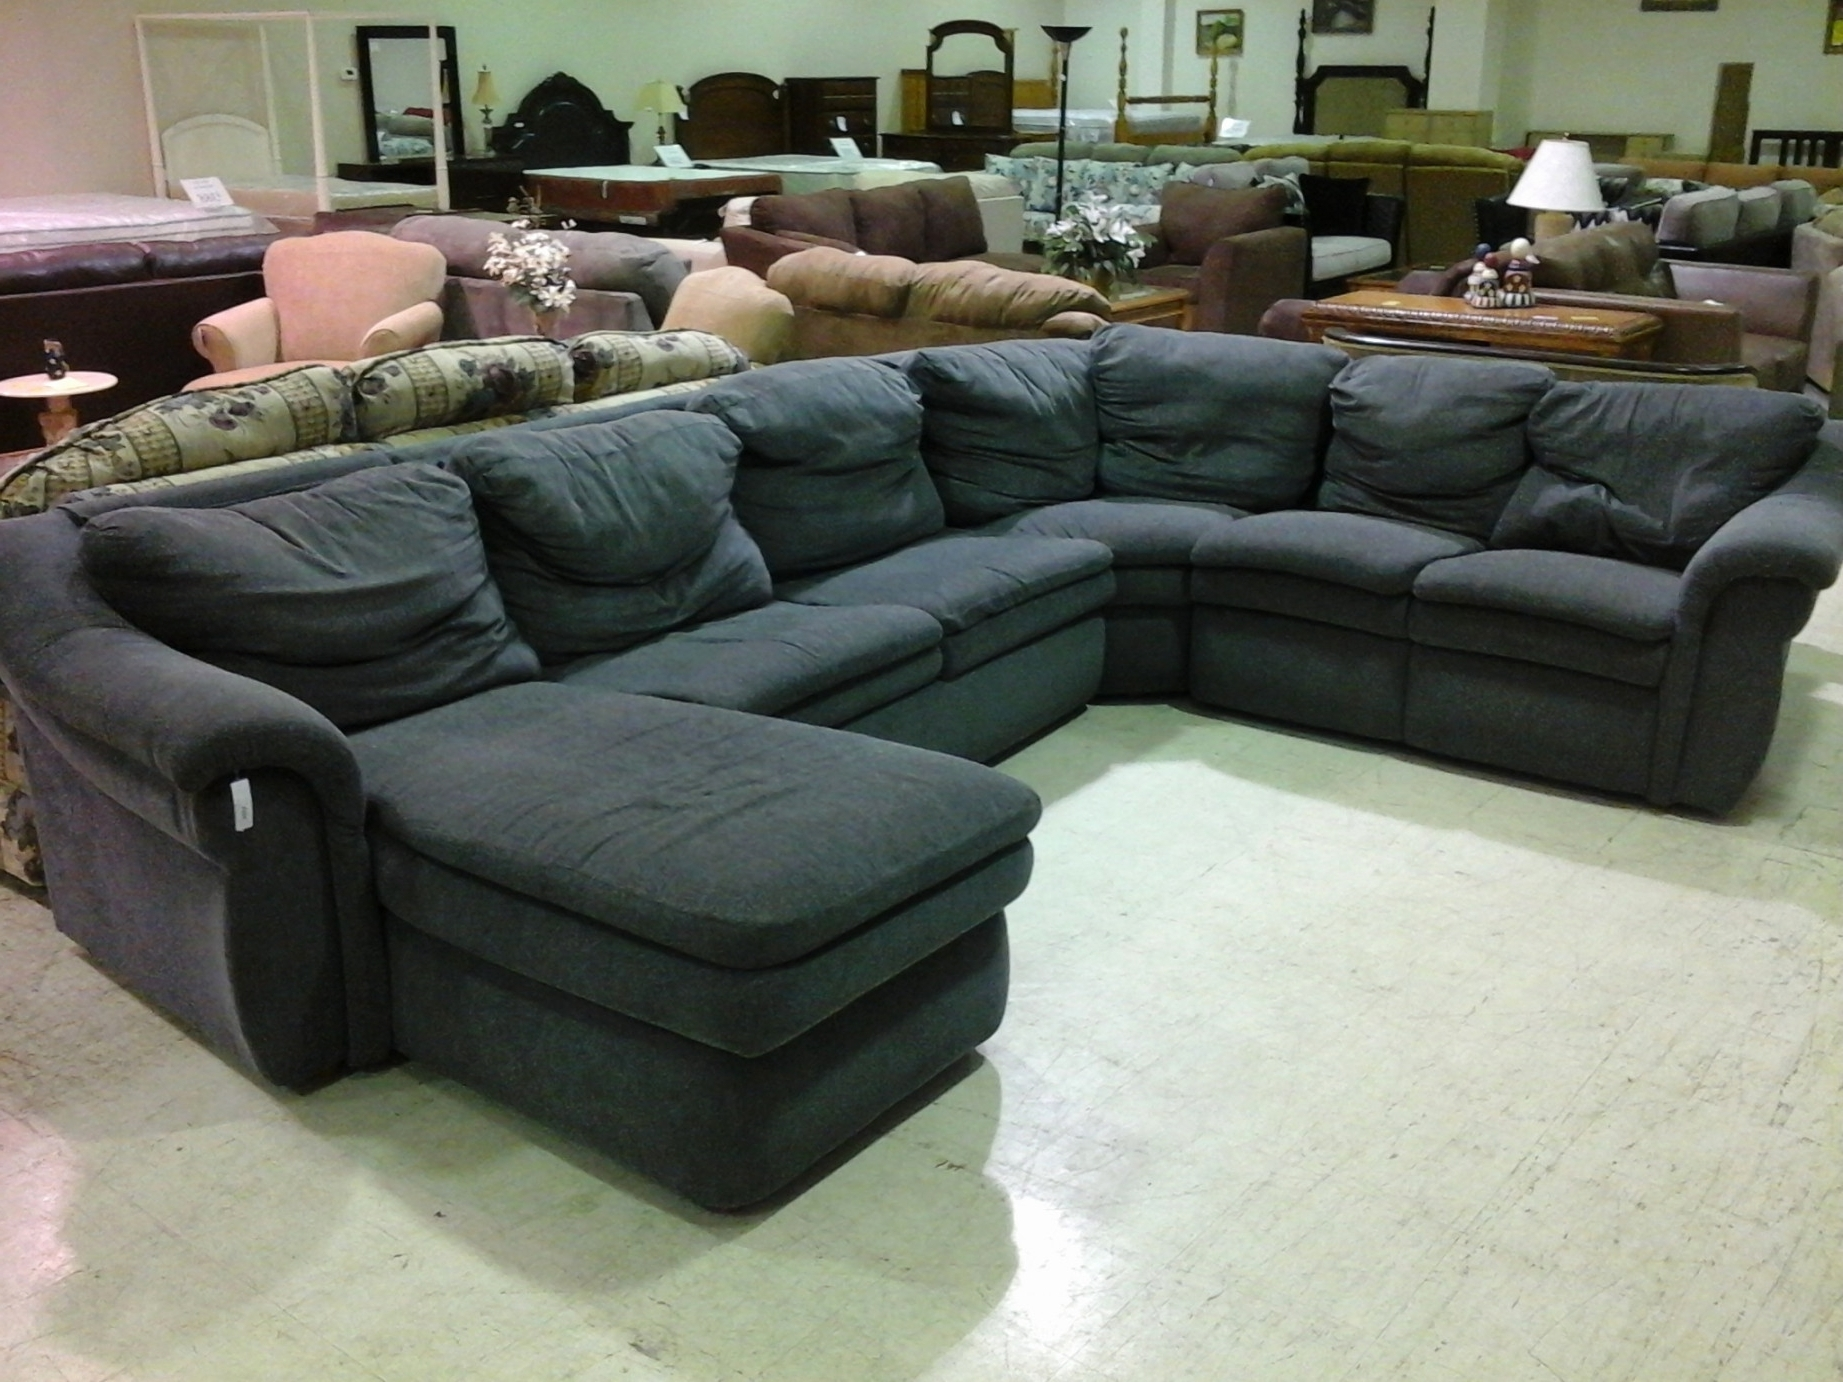 Couches With Chaise And Recliner With Trendy Inspirational Sectional Sofa With Chaise Recliner And Sleeper  (View 4 of 15)